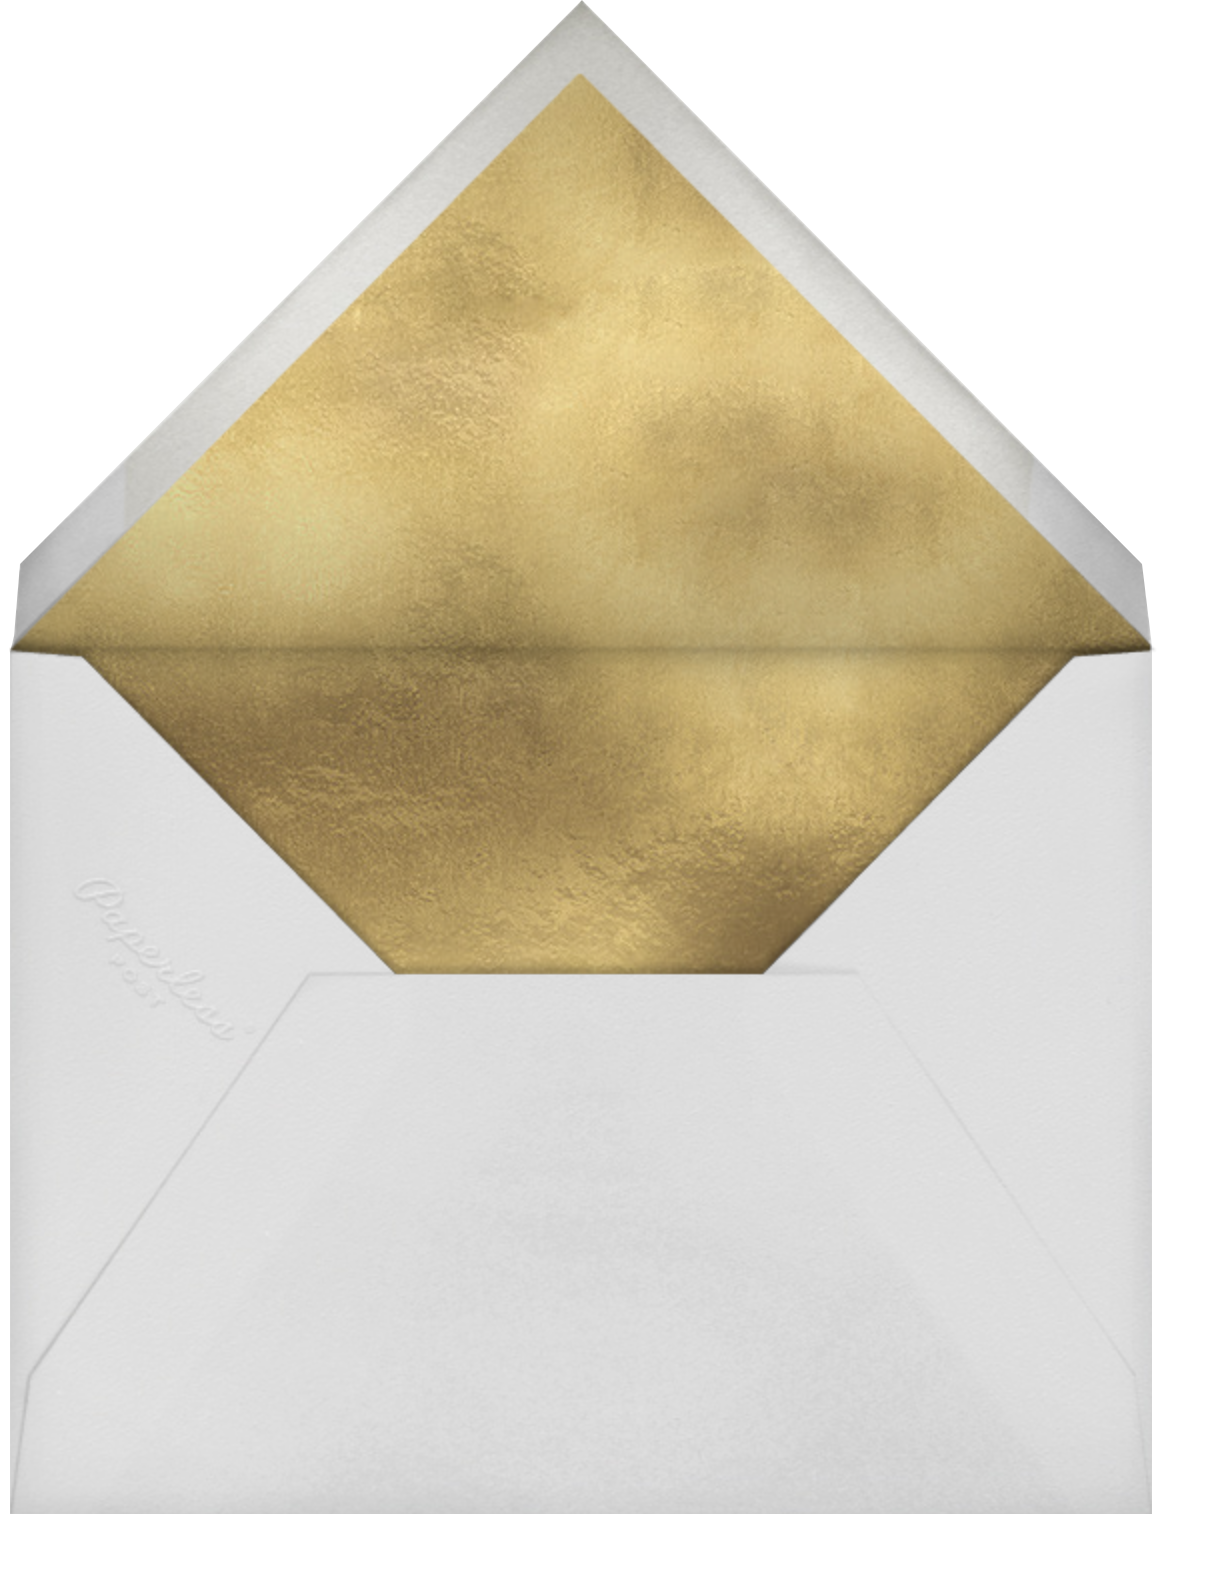 Merry and Bright Script - White - Rifle Paper Co. - Envelope